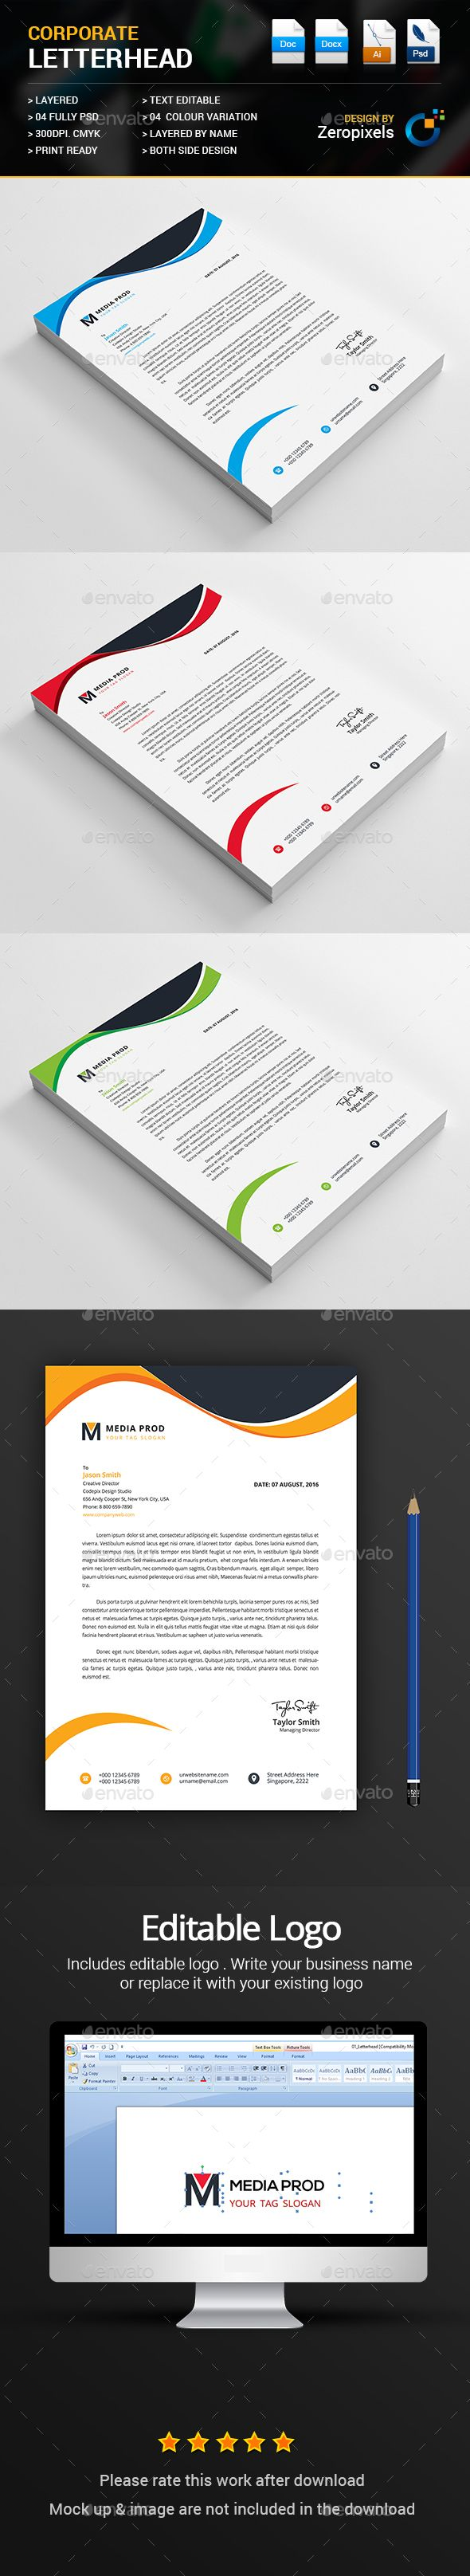 Create Company Letterhead Template | Best 25 Company Letterhead Template Ideas On Pinterest